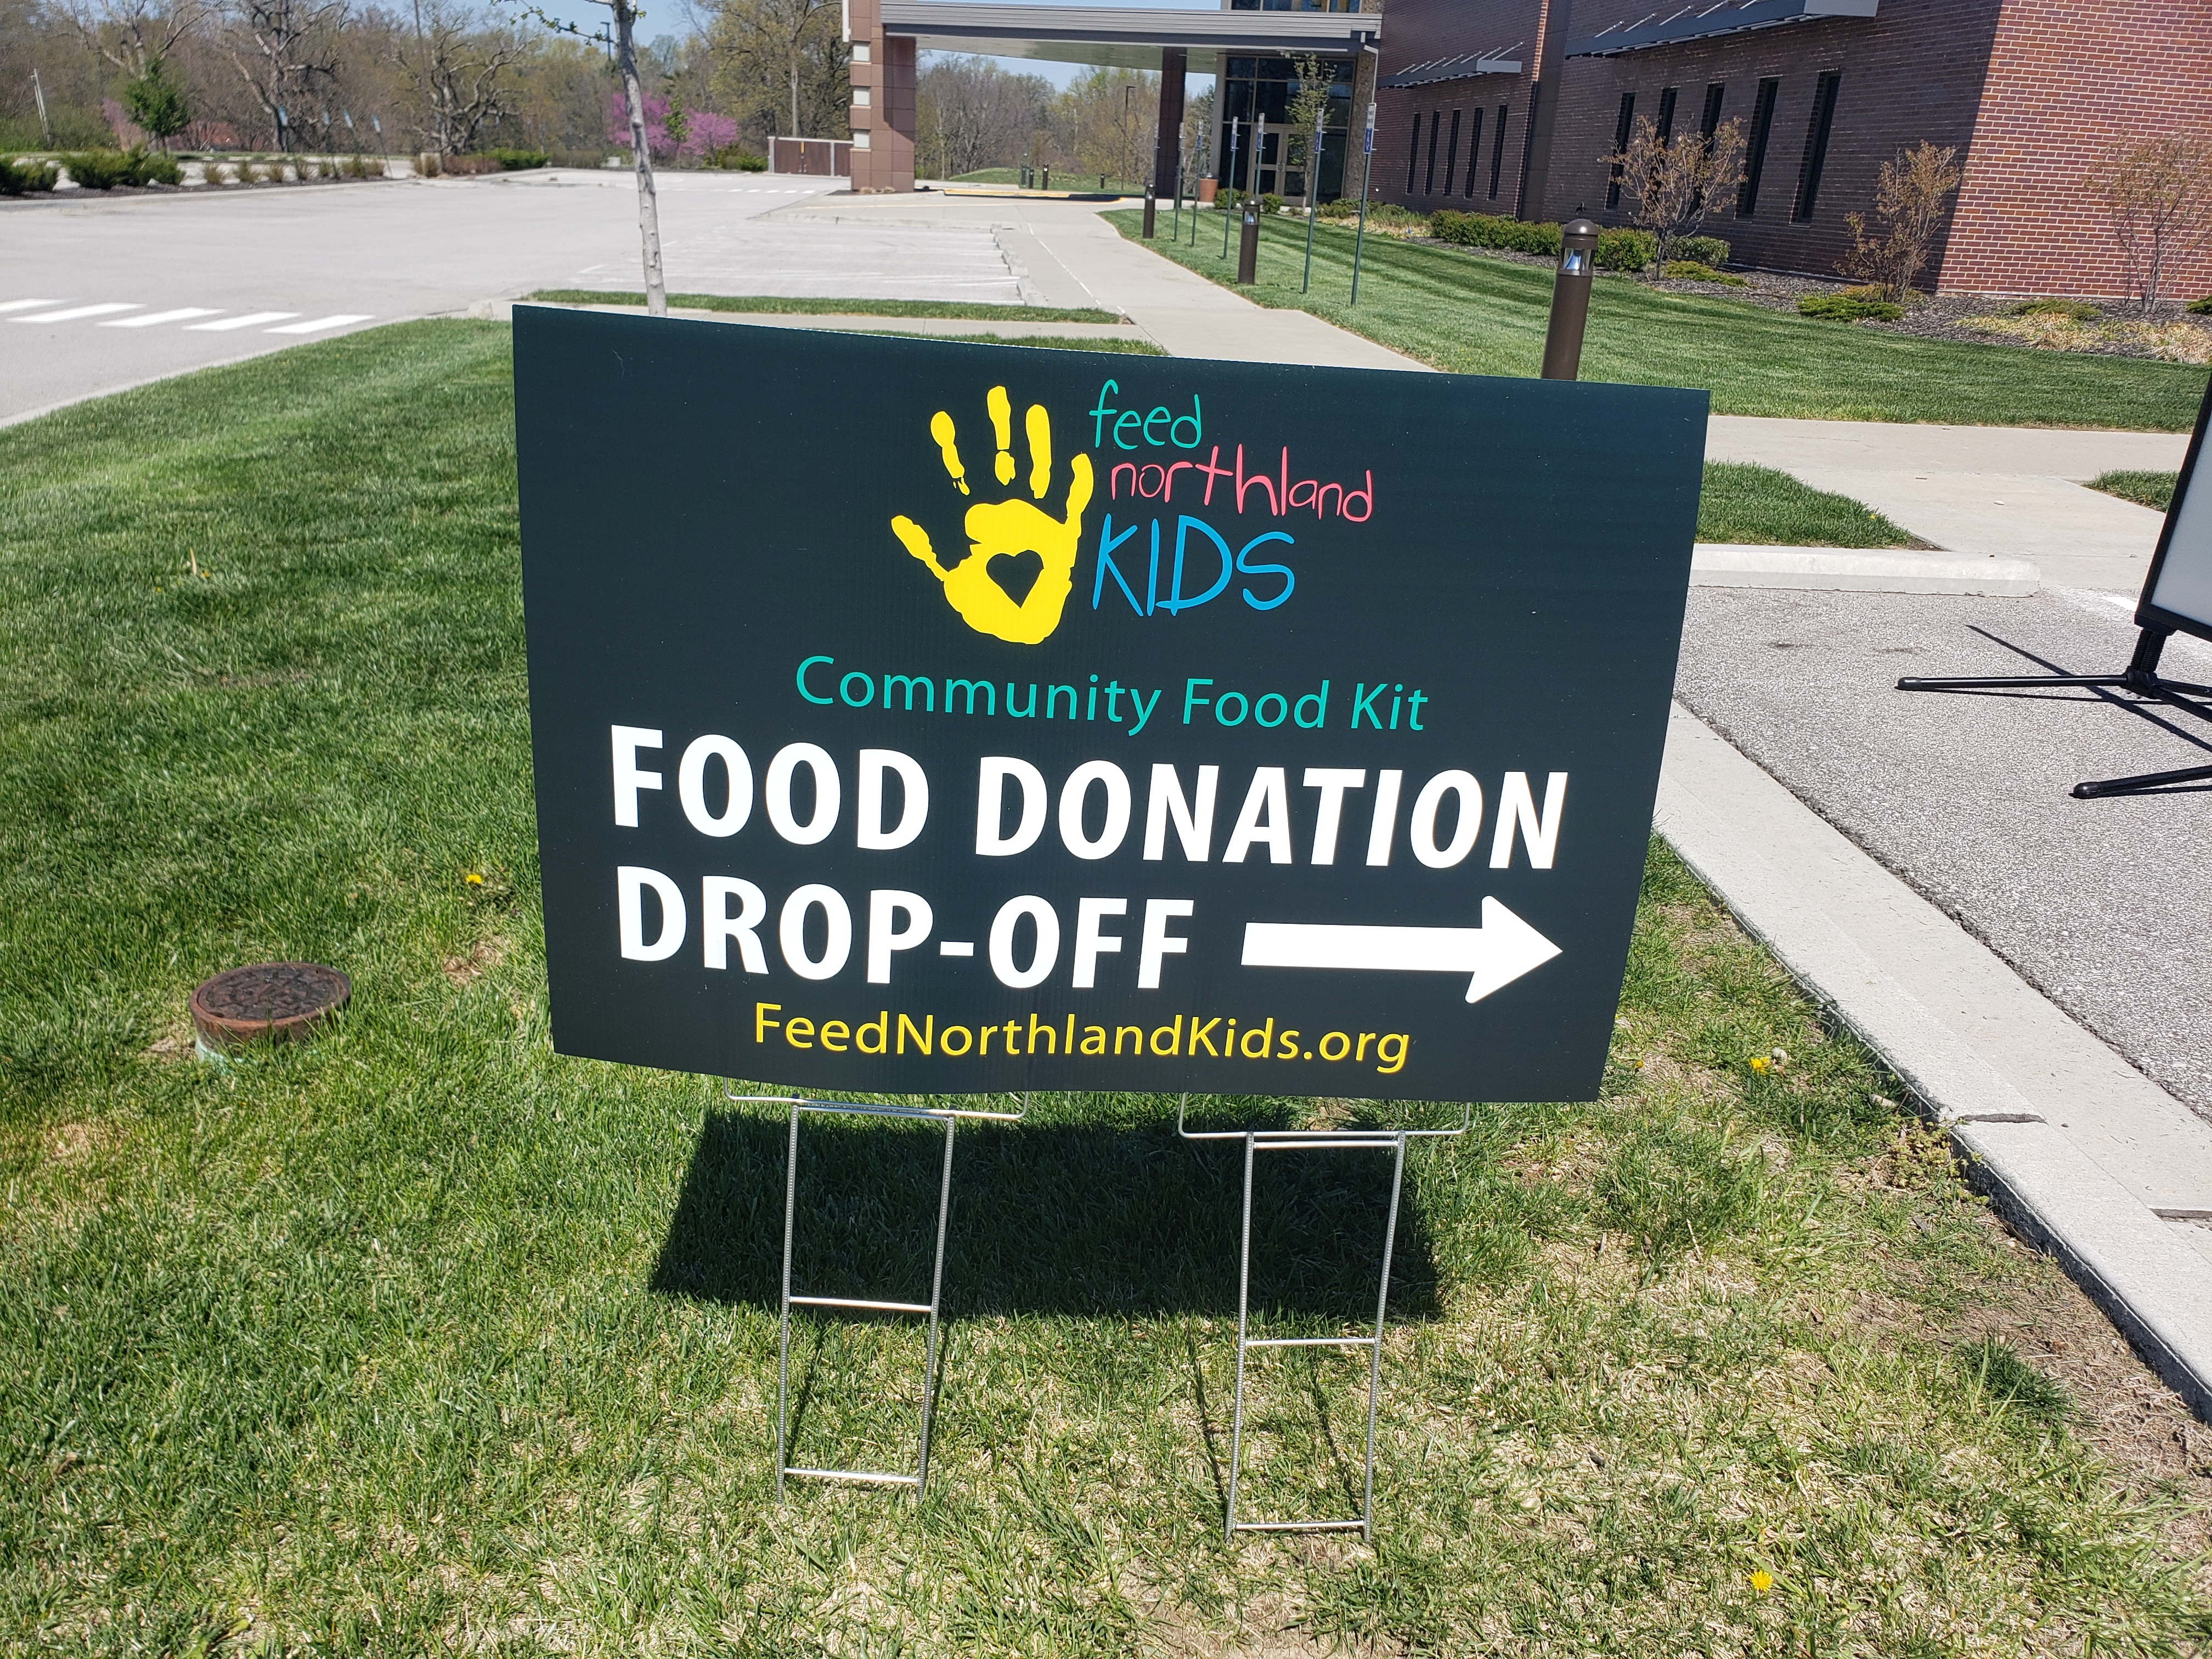 food donation dropoff